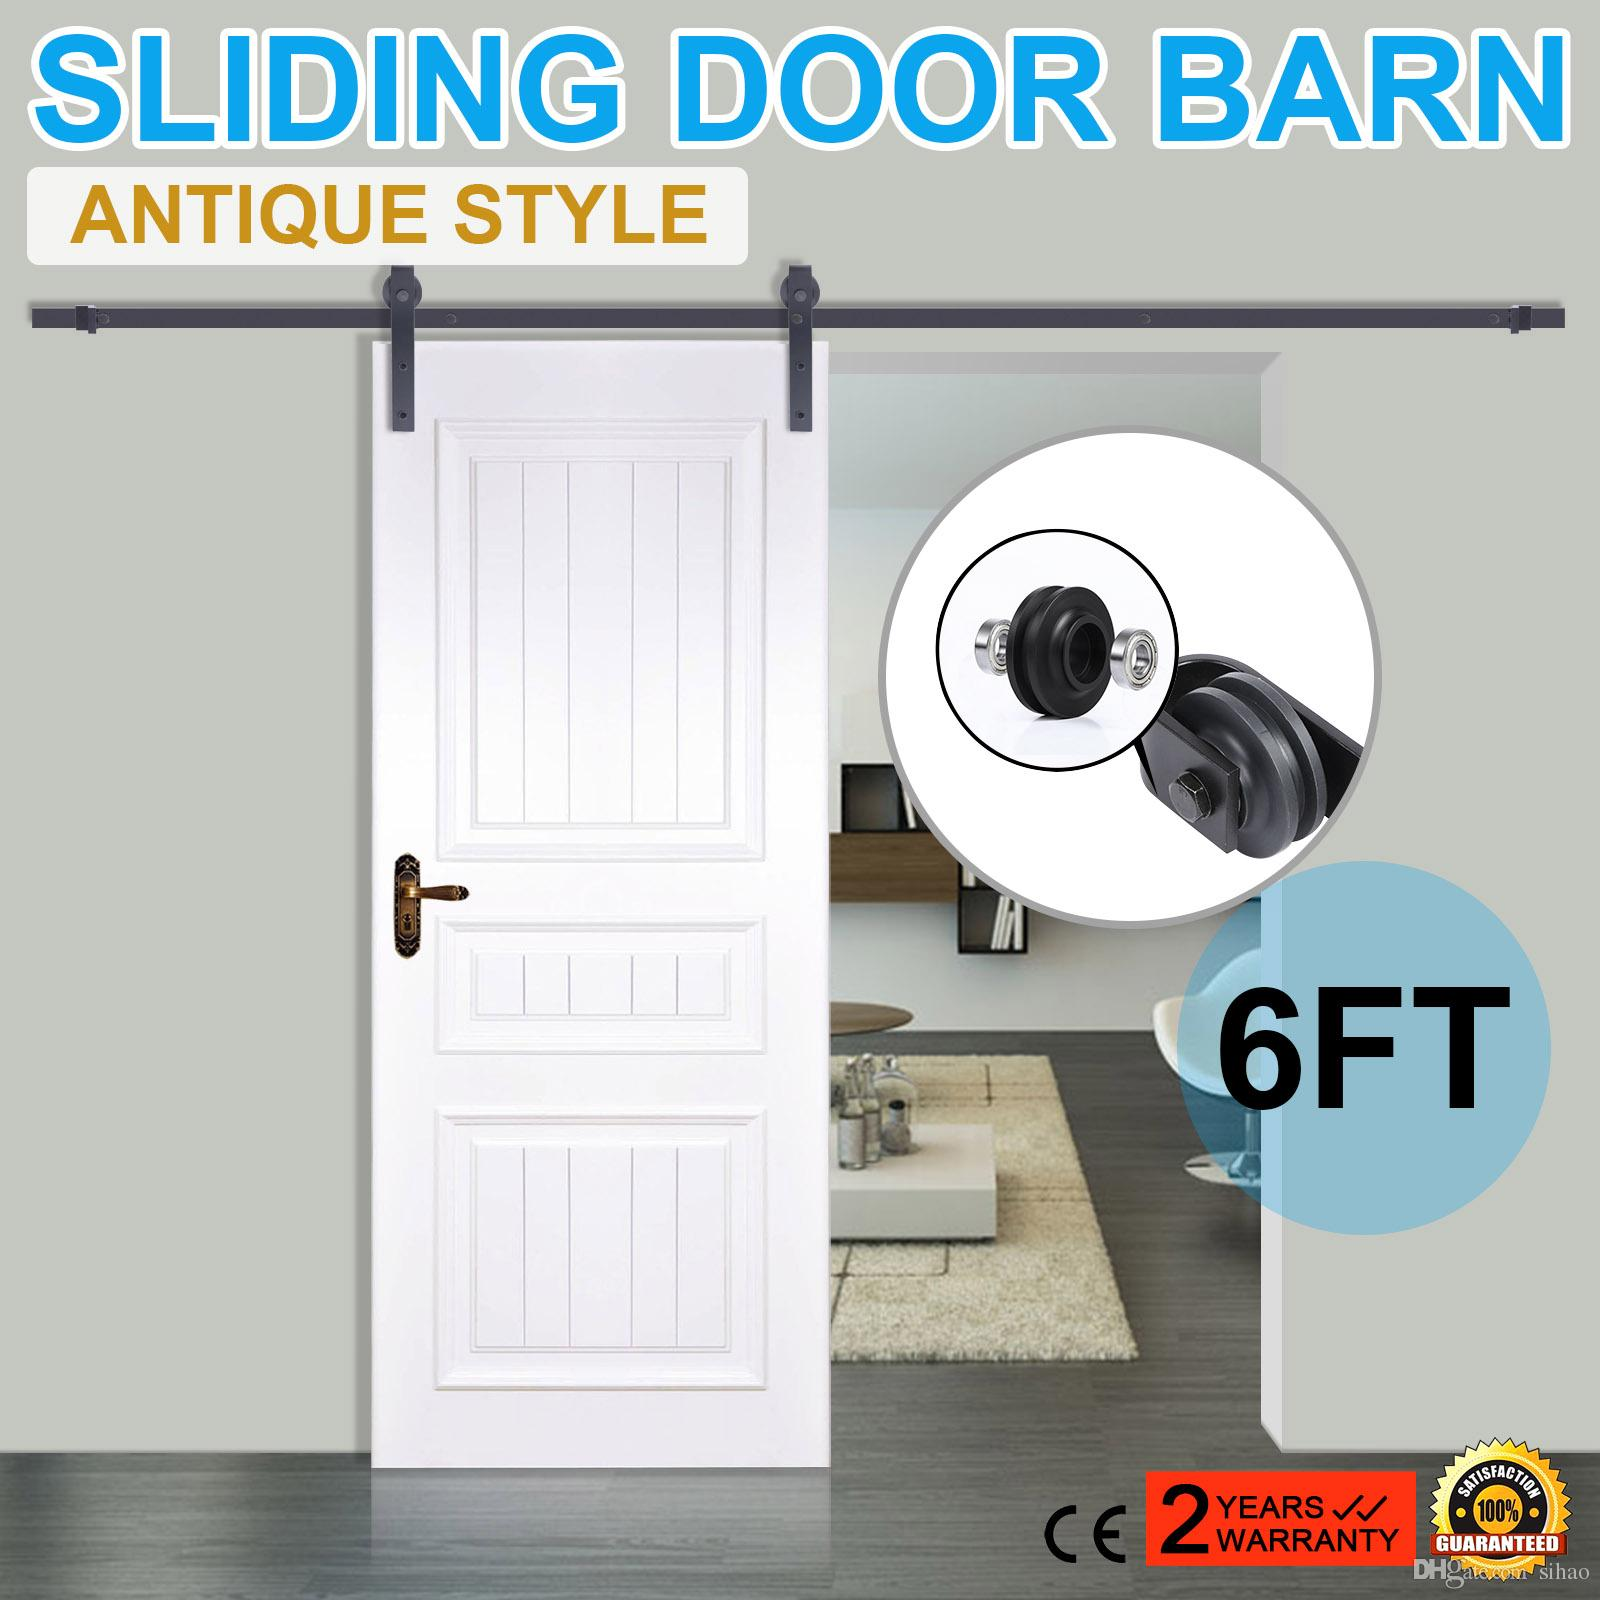 2018 New 6ft Sliding Door Barn Hardware Black Modern Antique Style Sliding  Barn Wood Door Hardware Closet Set From Sihao, $281.41 | Dhgate.Com